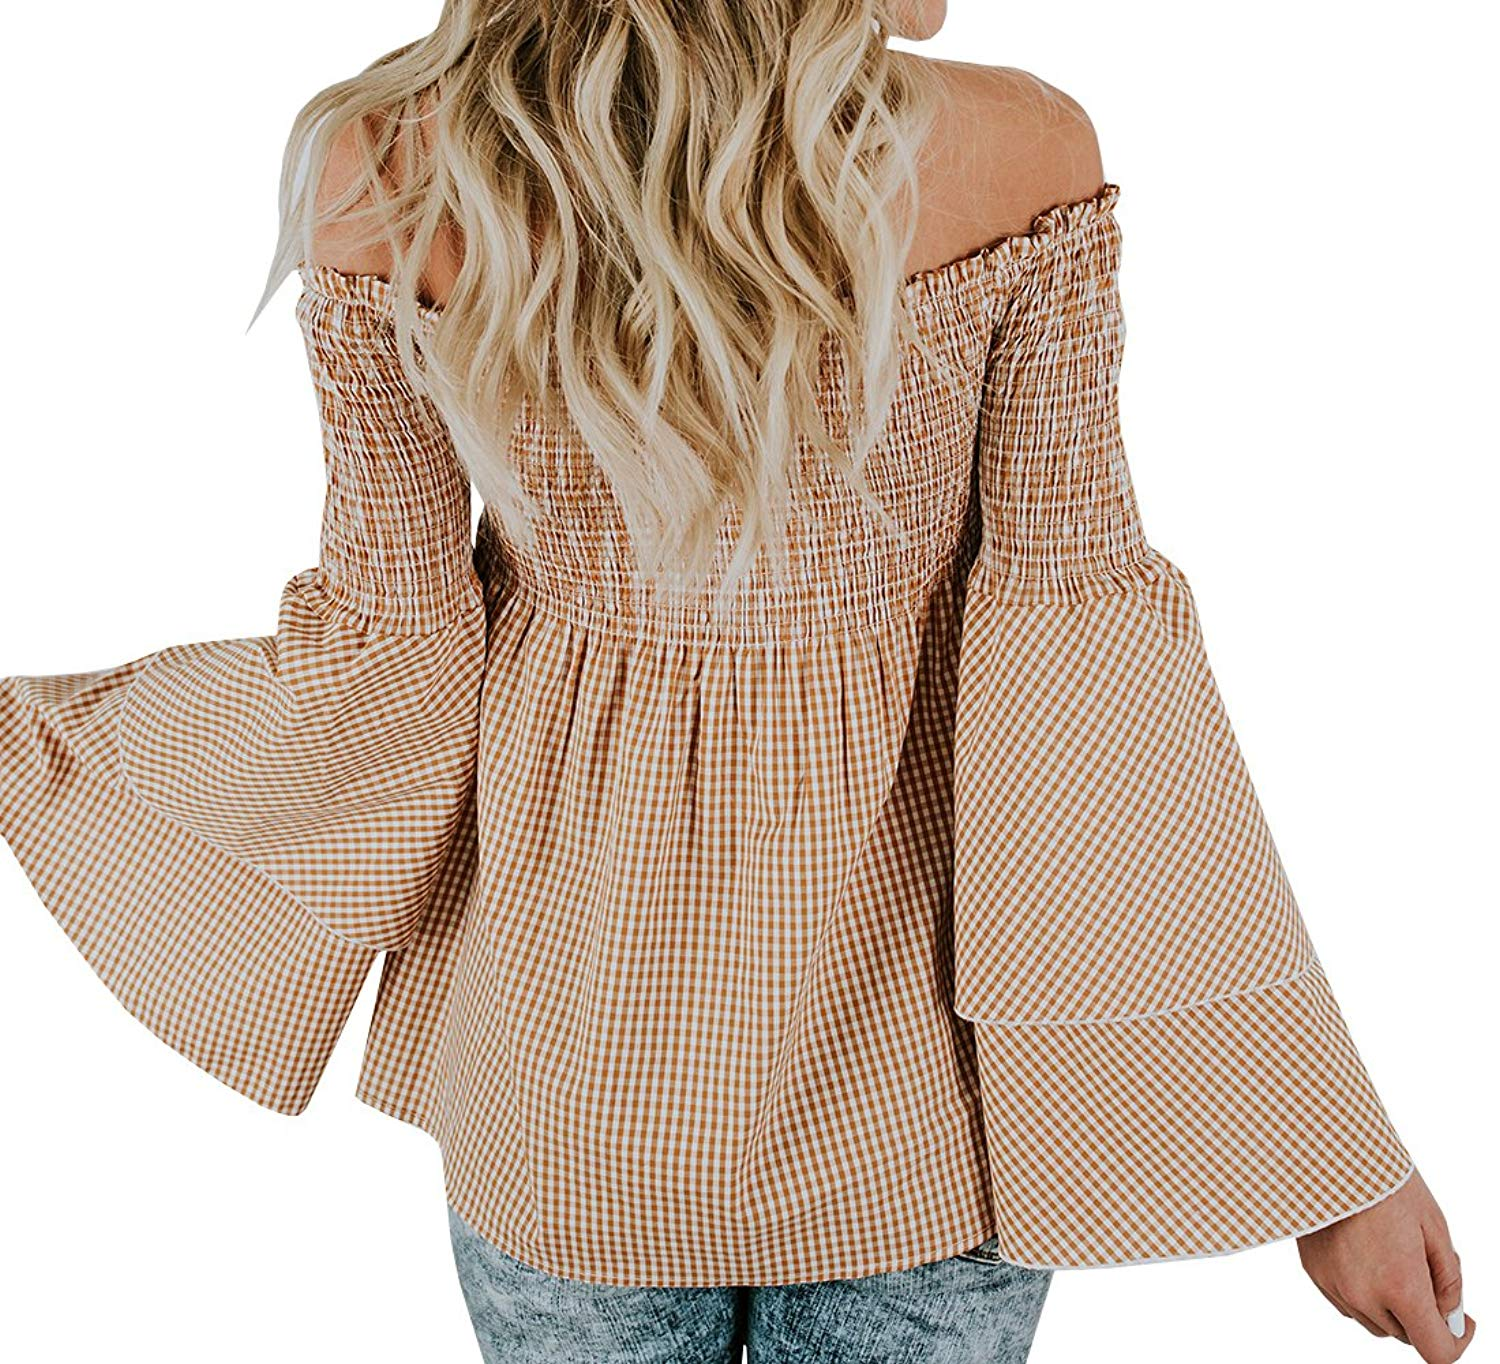 ee69ea7067e589 Get Quotations · Chellysun Women Plaid Off Shoulder Ruffle Tops Long Sleeve  Casual Blouse Shirts